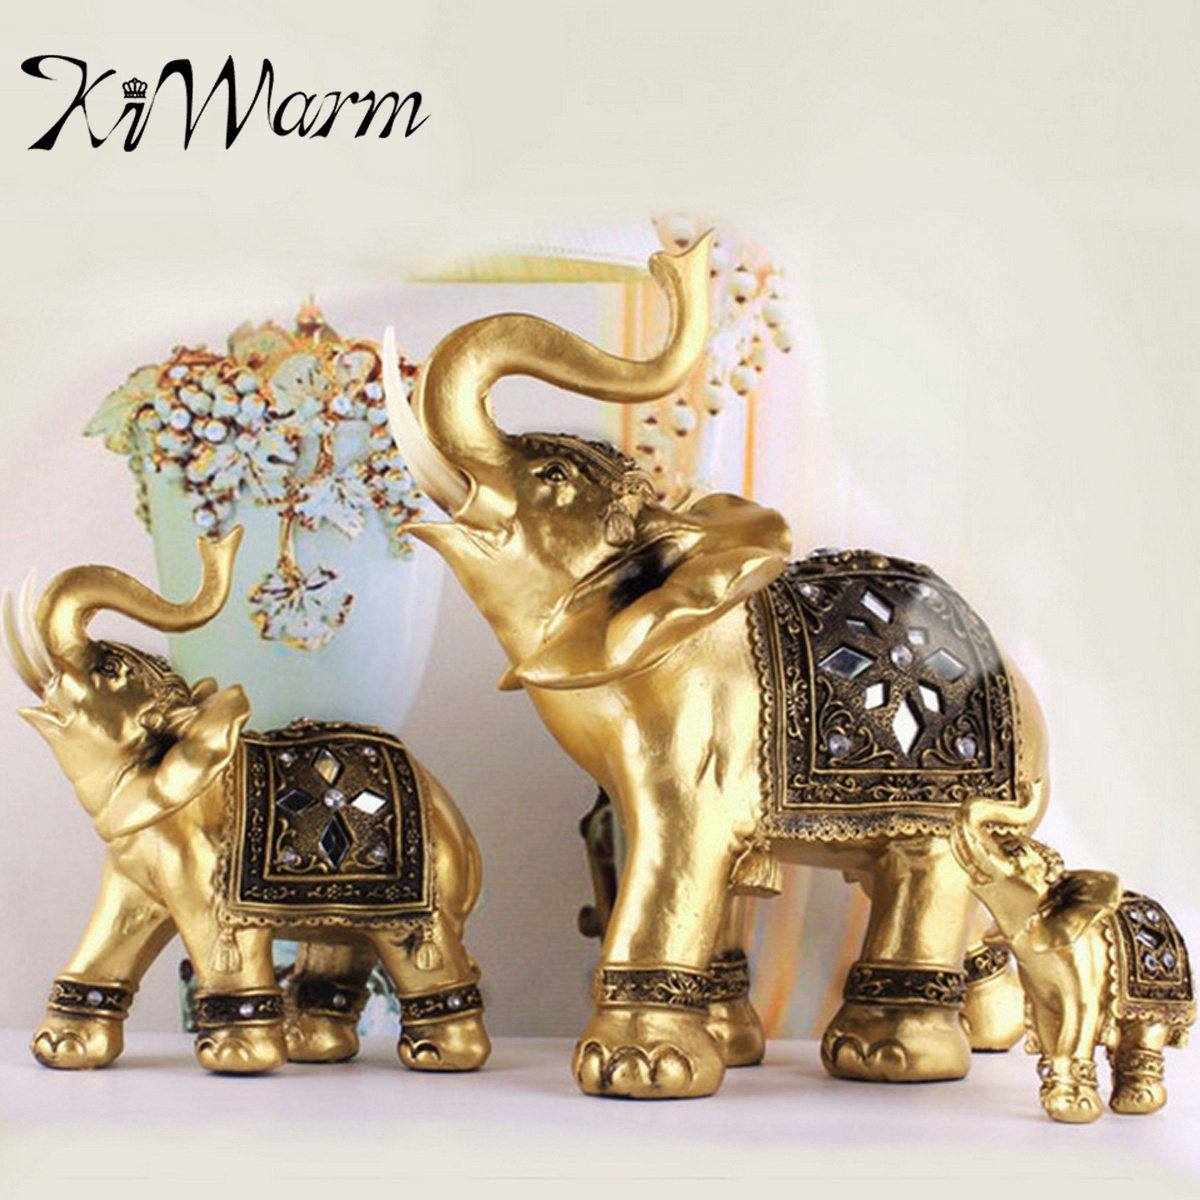 KIWARM 3 Size Feng Shui Elegant Elephant Trunk Statue Lucky Wealth Figurine Crafts Ornaments Gift For Home Office Desktop